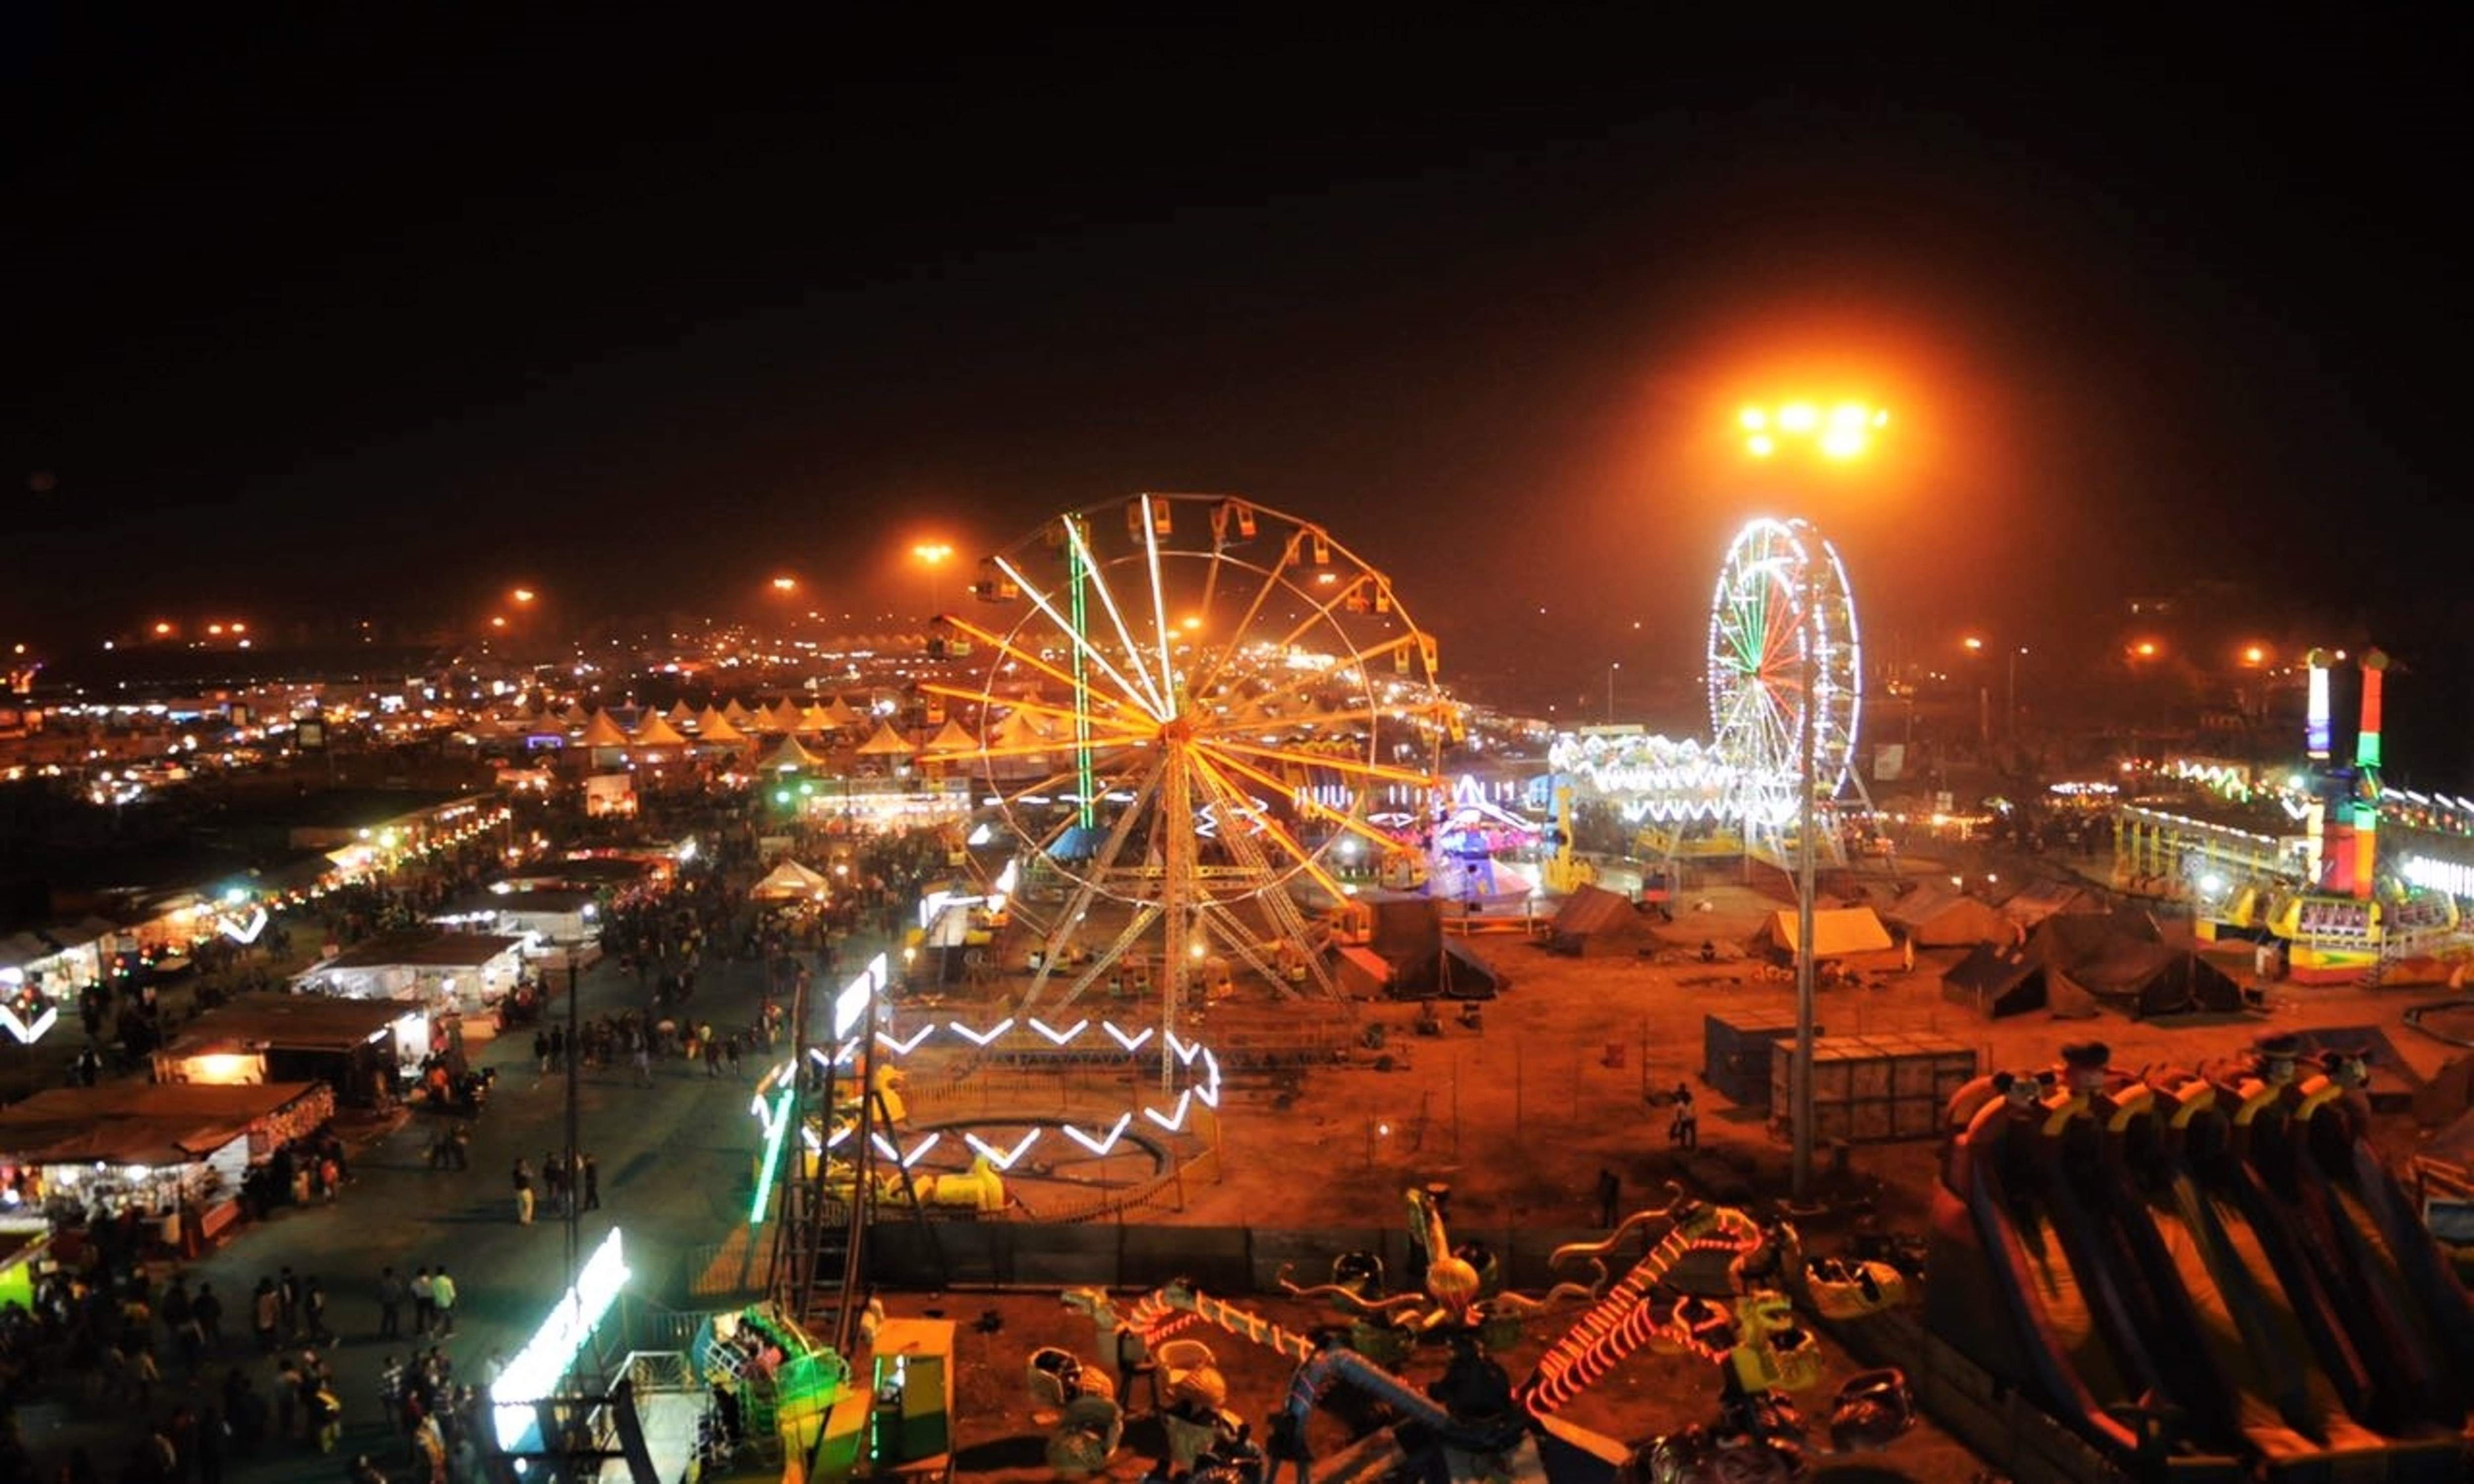 A Glimpse of Lucknow Mahotsava (www.lucknowmahotsav.in)